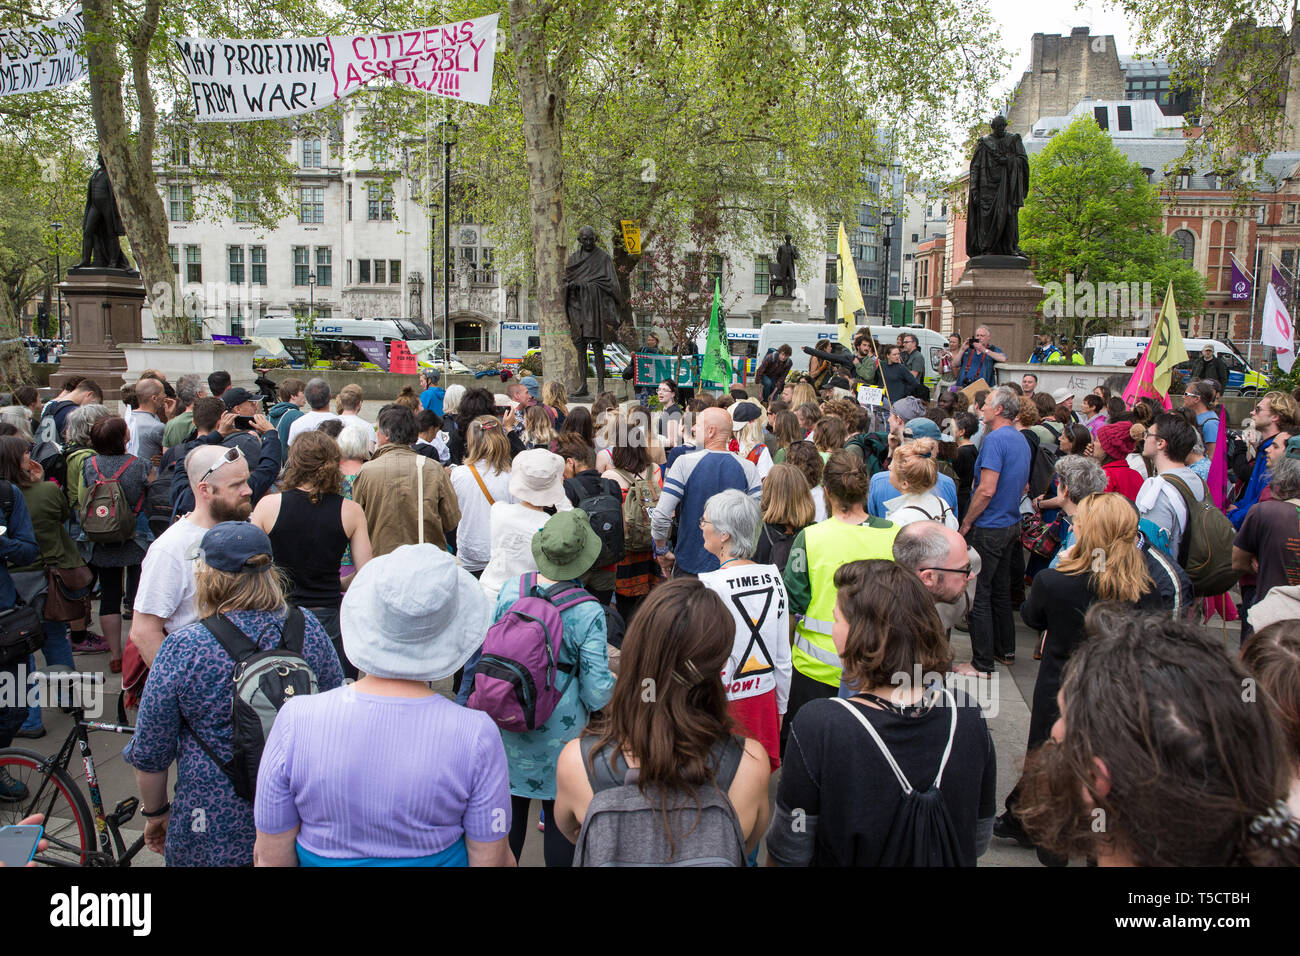 London, UK. 23rd April 2019. Climate change activists from Extinction Rebellion congregate around the statue of Gandhi during an assembly in Parliament Square before attempting to deliver letters to their Members of Parliament requesting meetings to discuss the issue of climate change. All but ten were prevented from doing so by the Metropolitan Police. Credit: Mark Kerrison/Alamy Live News - Stock Image